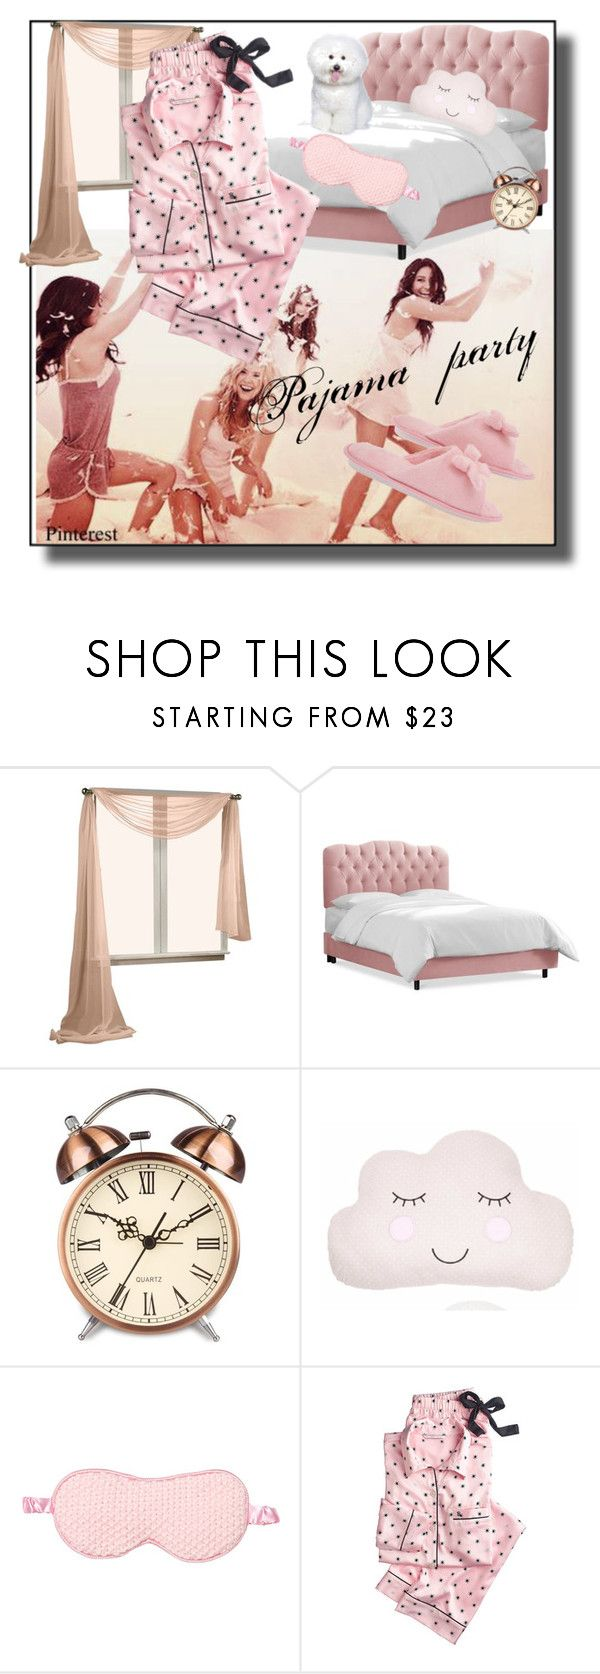 """""""Pajama party"""" by zakharova-83 ❤ liked on Polyvore featuring Pijama, Sass & Belle, Victoria's Secret and Deluxe Comfort"""